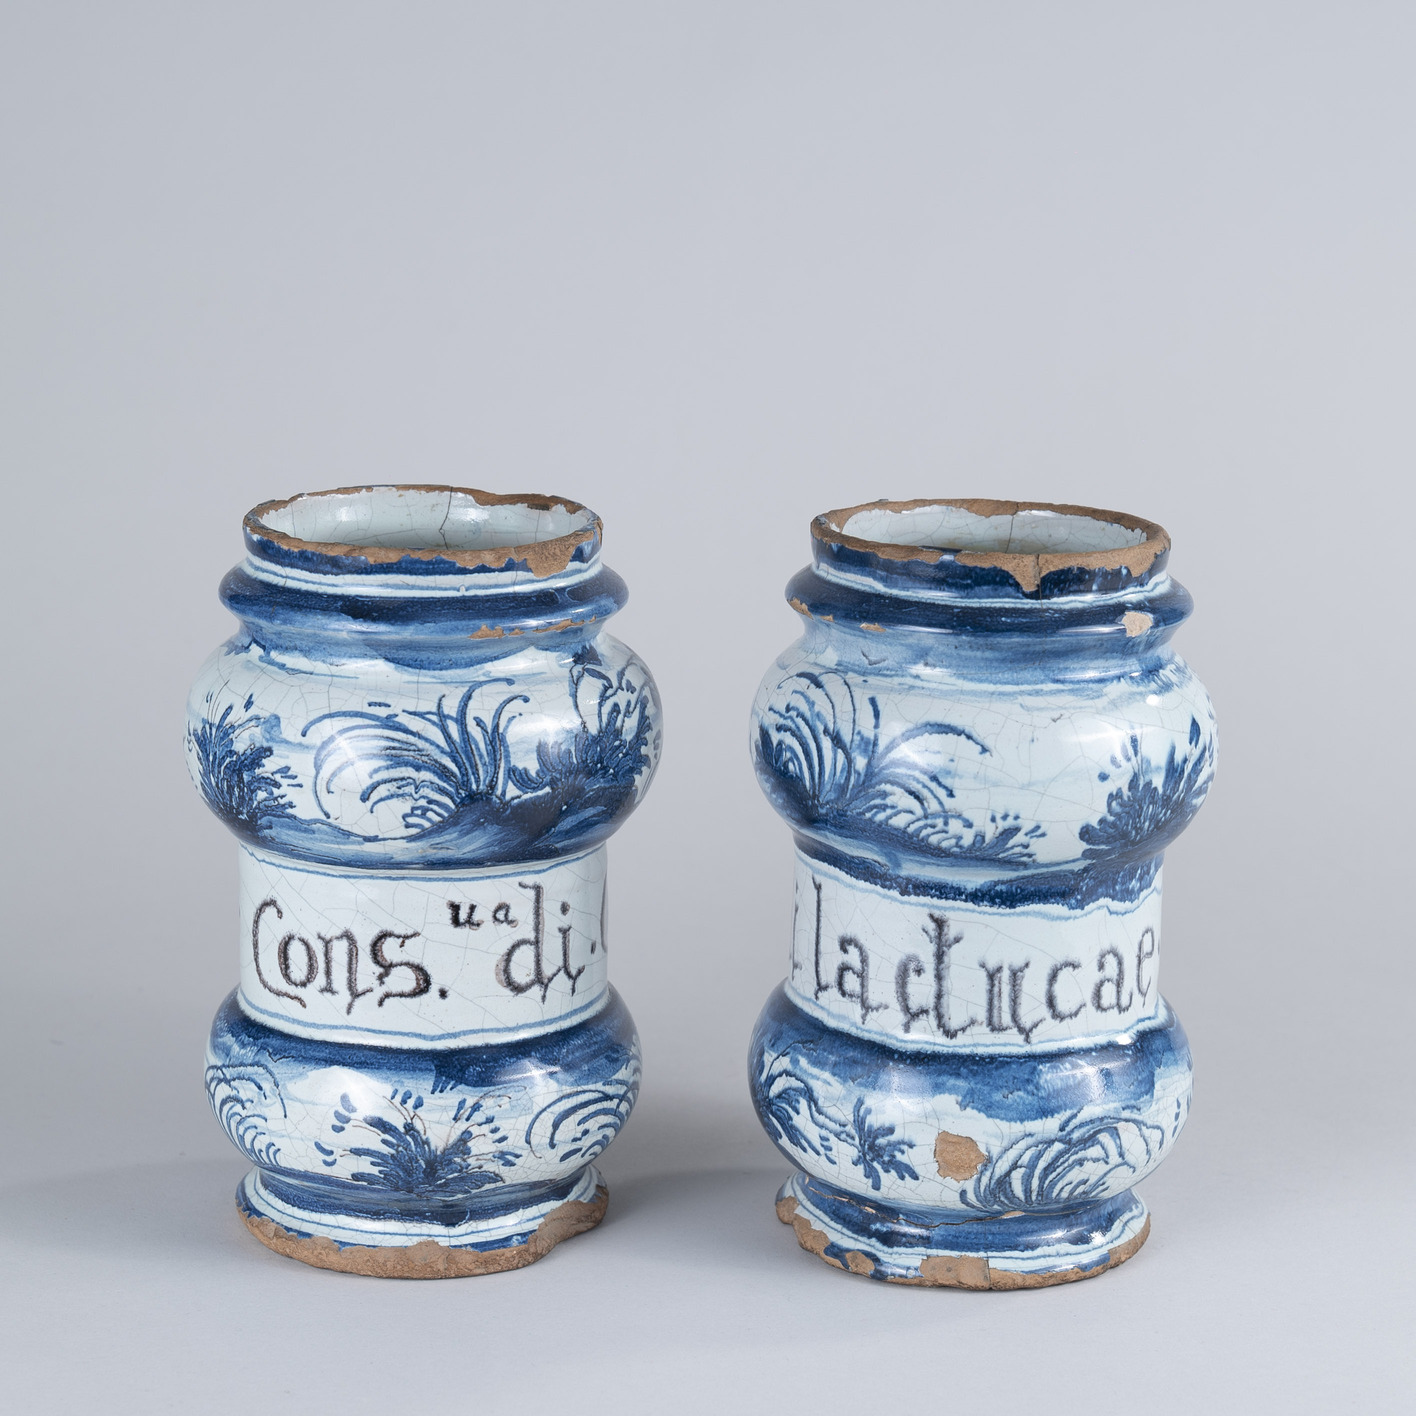 Pair of 17th Century Savona Apothecary jars